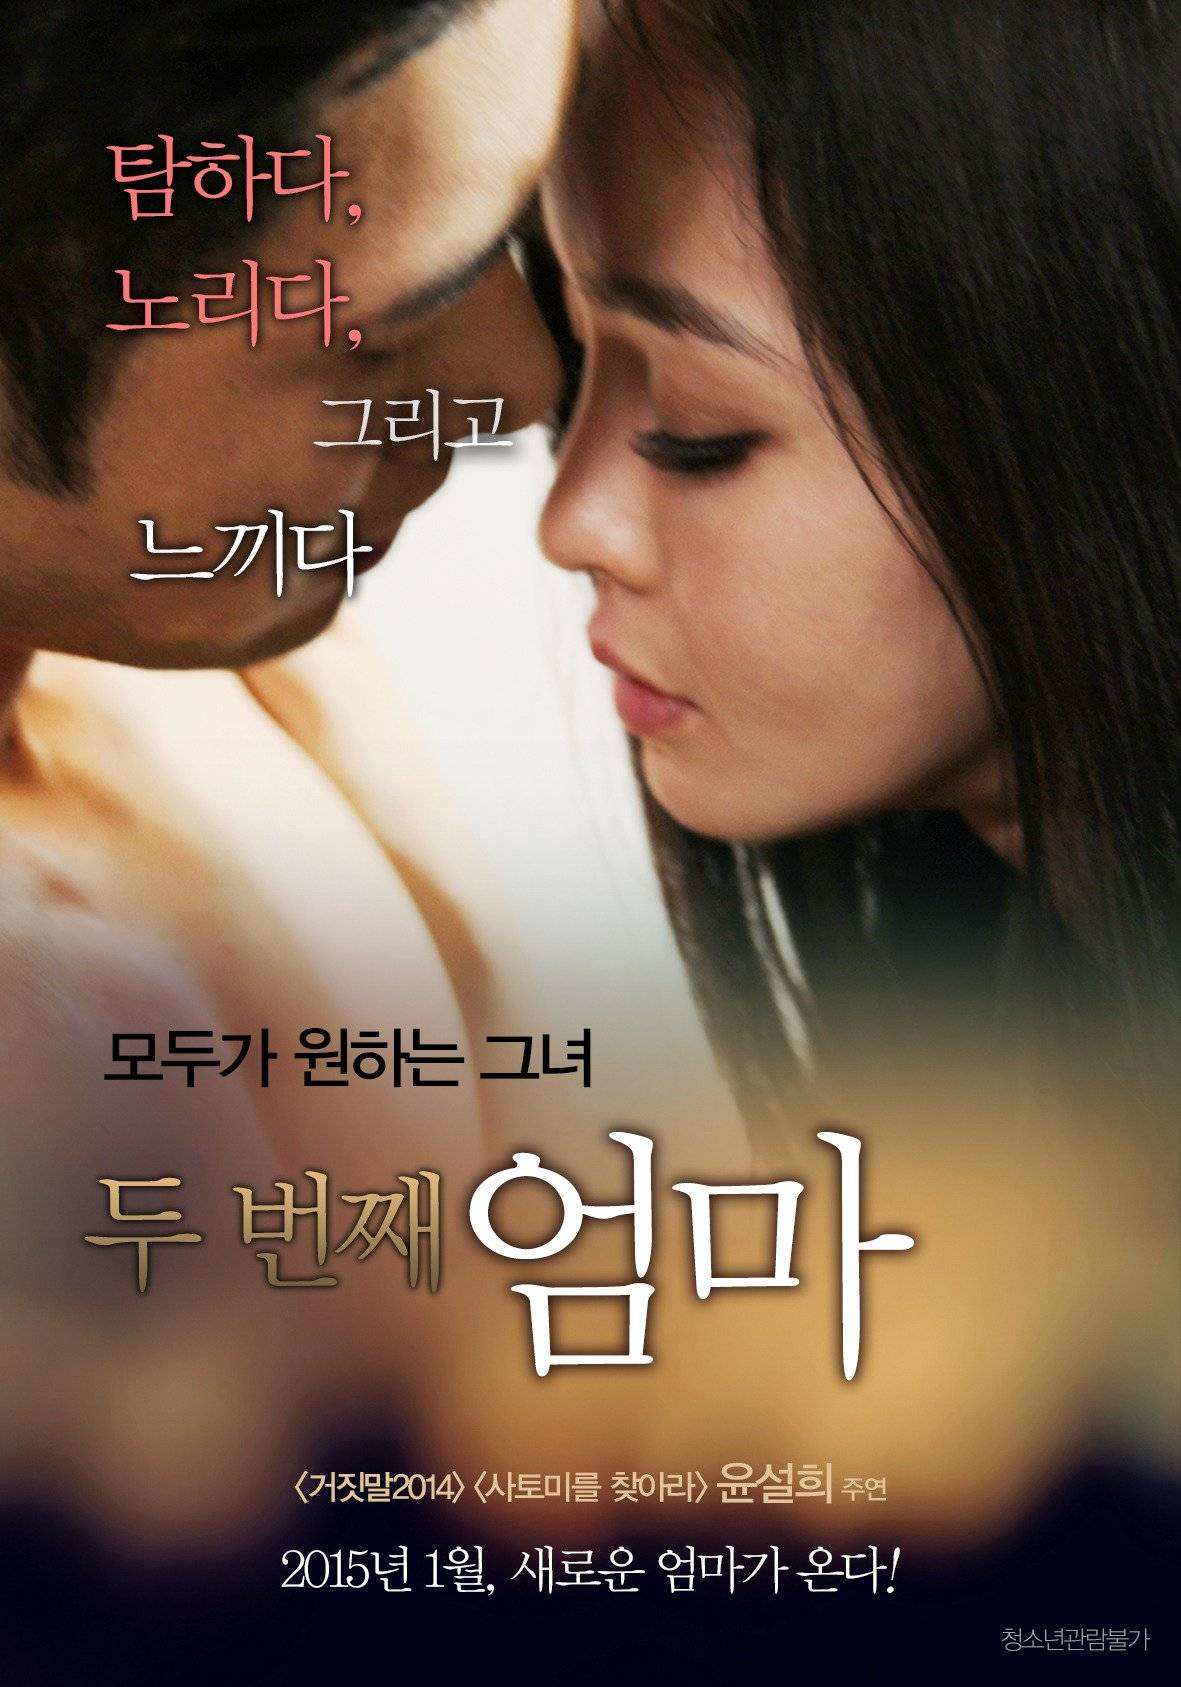 Download Filem Drama Semi Korea - rhinowerv's diary